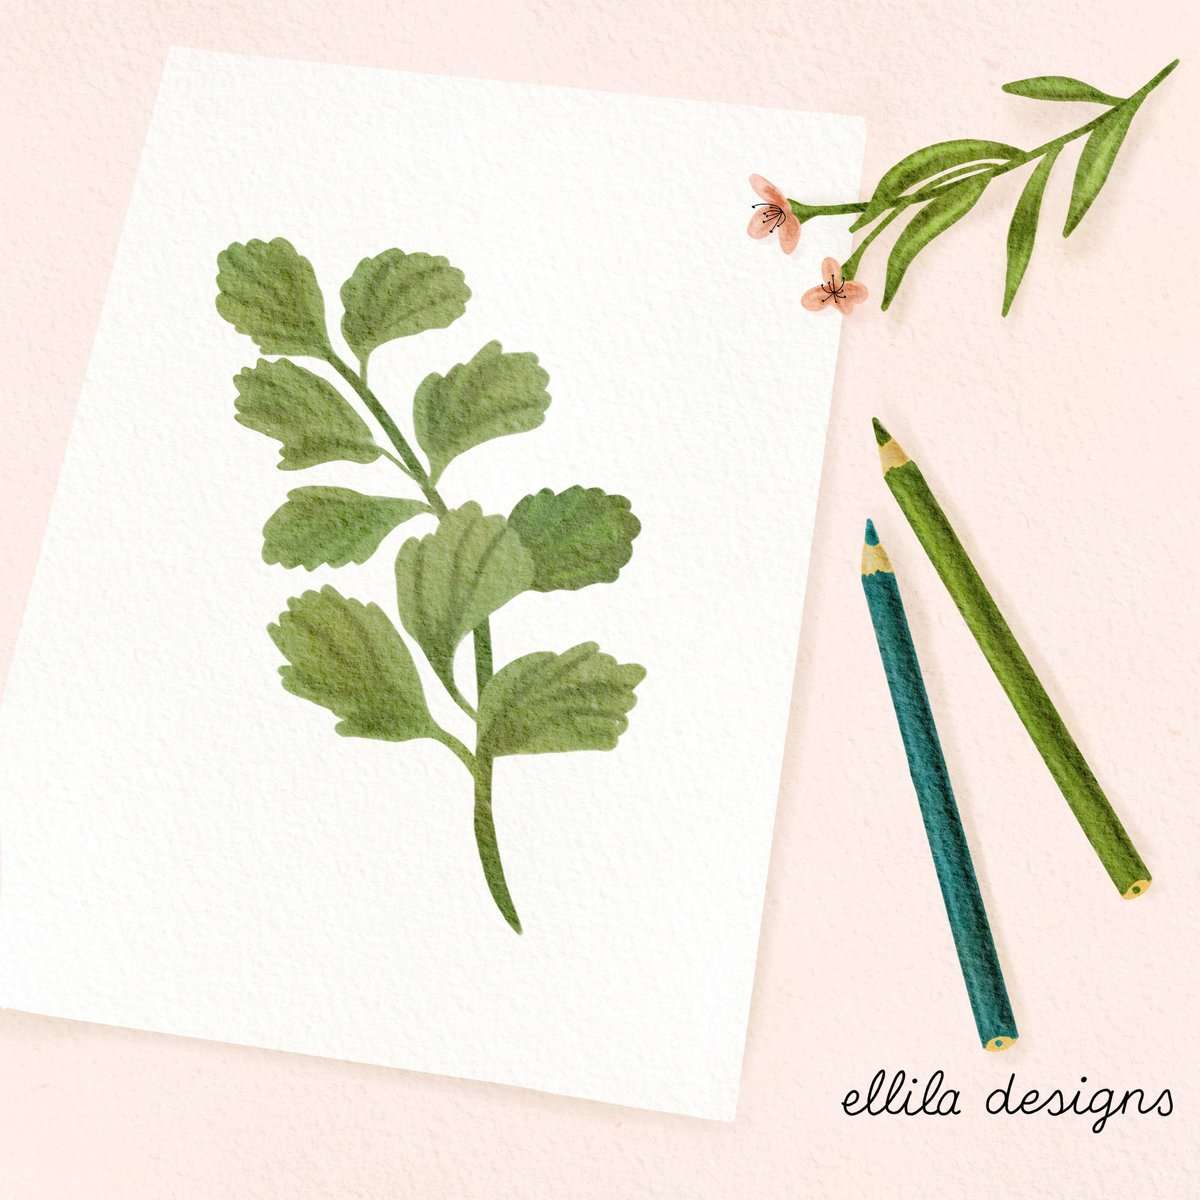 Botanical drawing illustration Ellila Designs